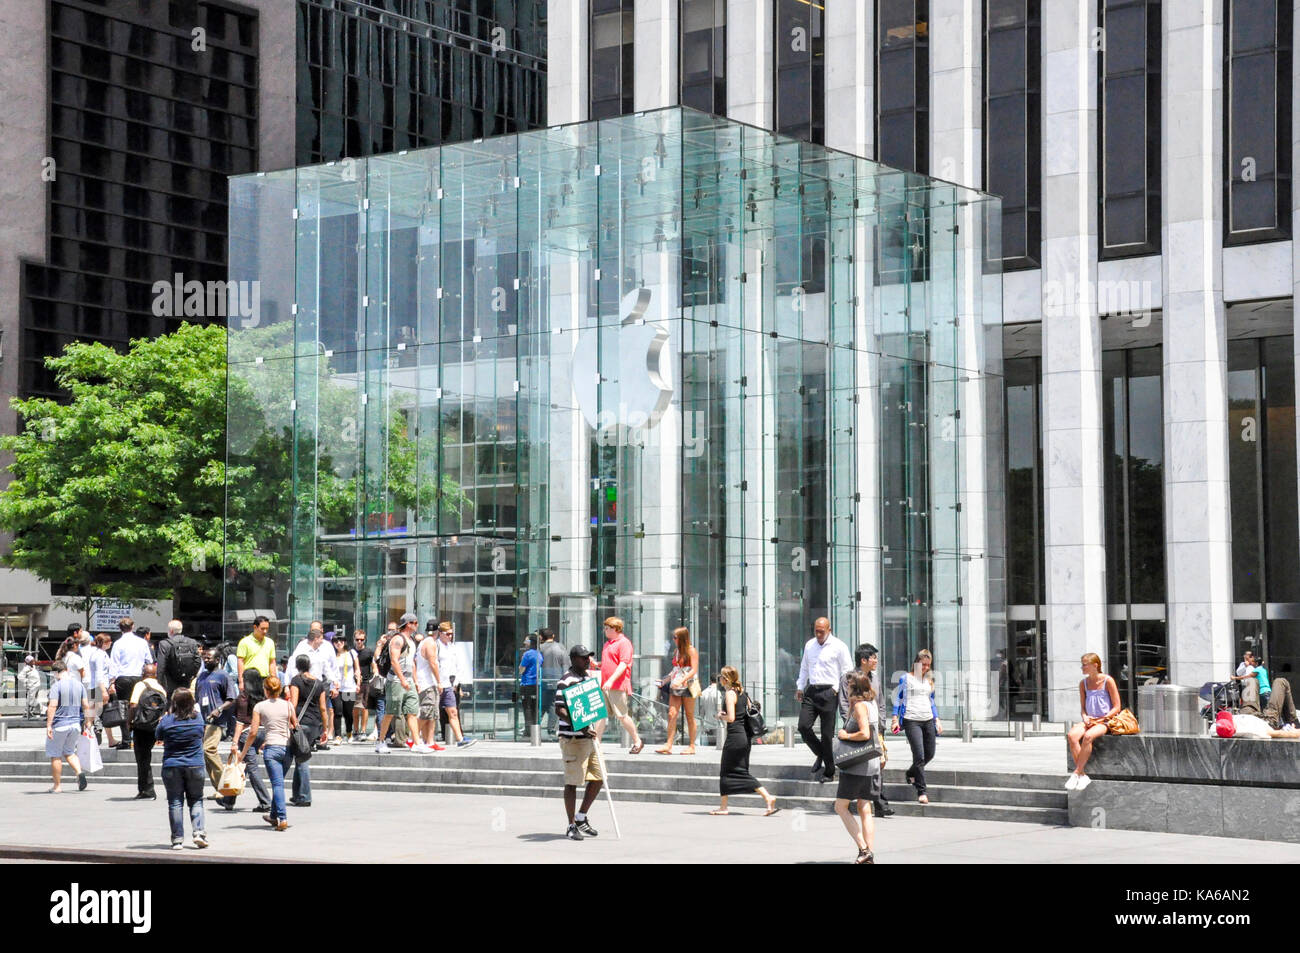 Iconic glass cube entrance to Apple's flagship store on 5th Ave, Midtown Manhattan, New York City, USA. Stock Photo